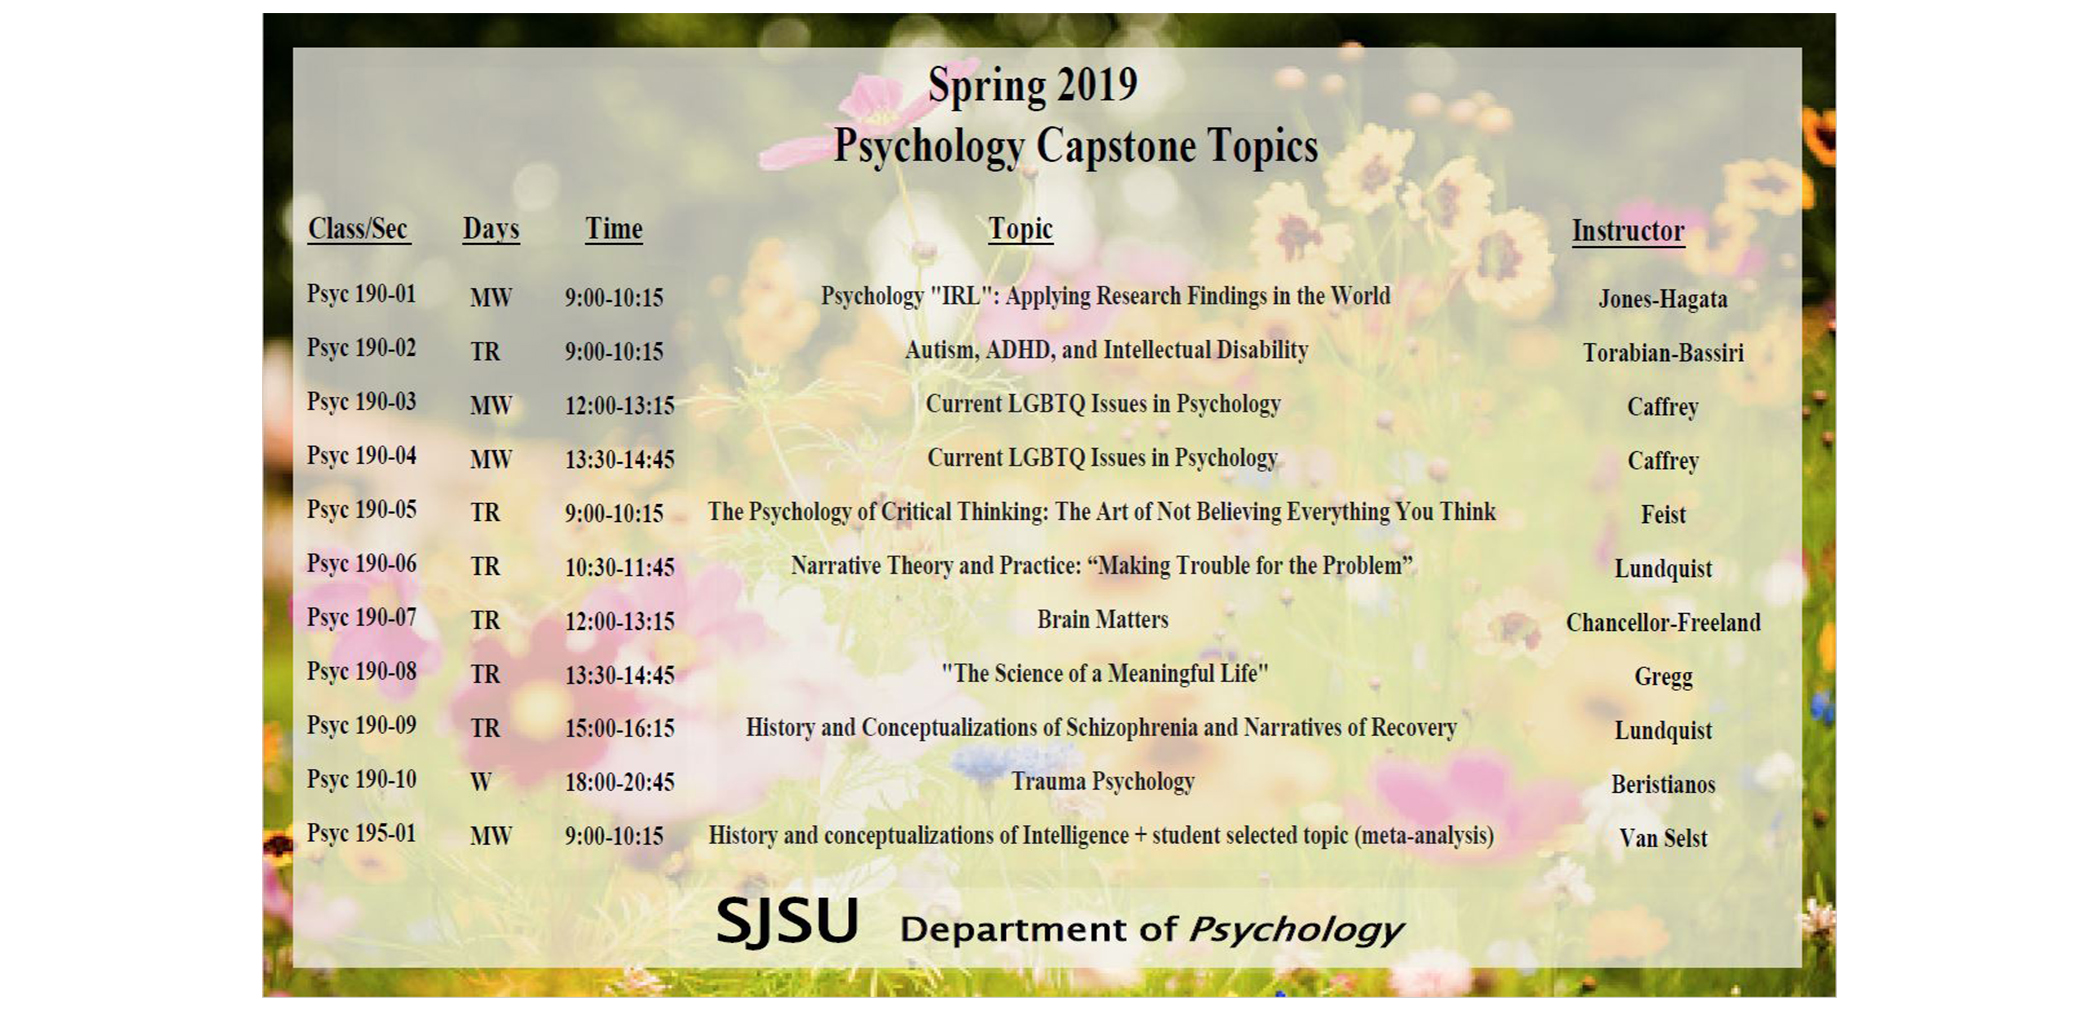 Spring 2019 Psychology Capstone Topics